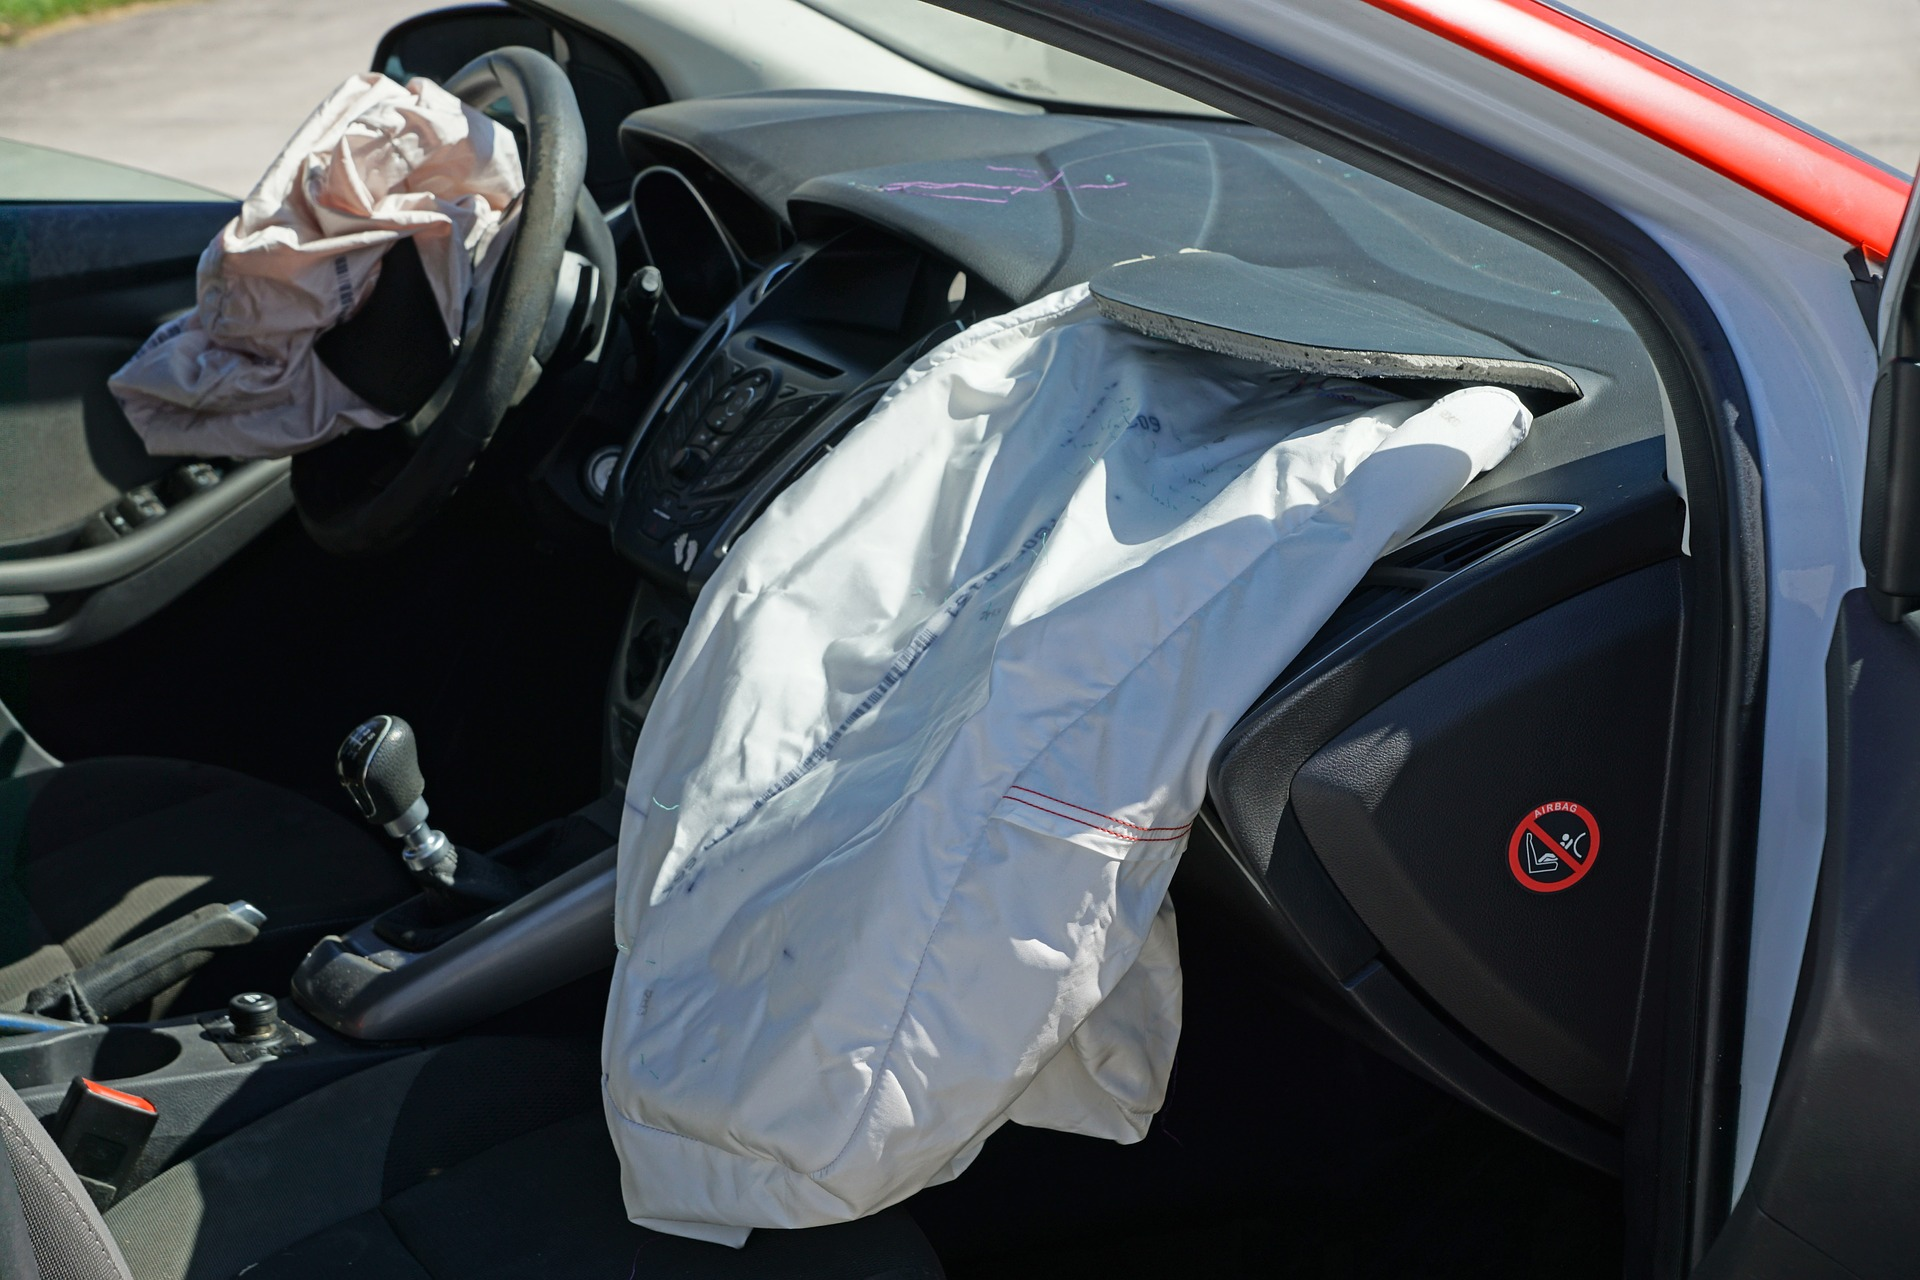 The dashboard of a car; the airbags have deployed and are deflated